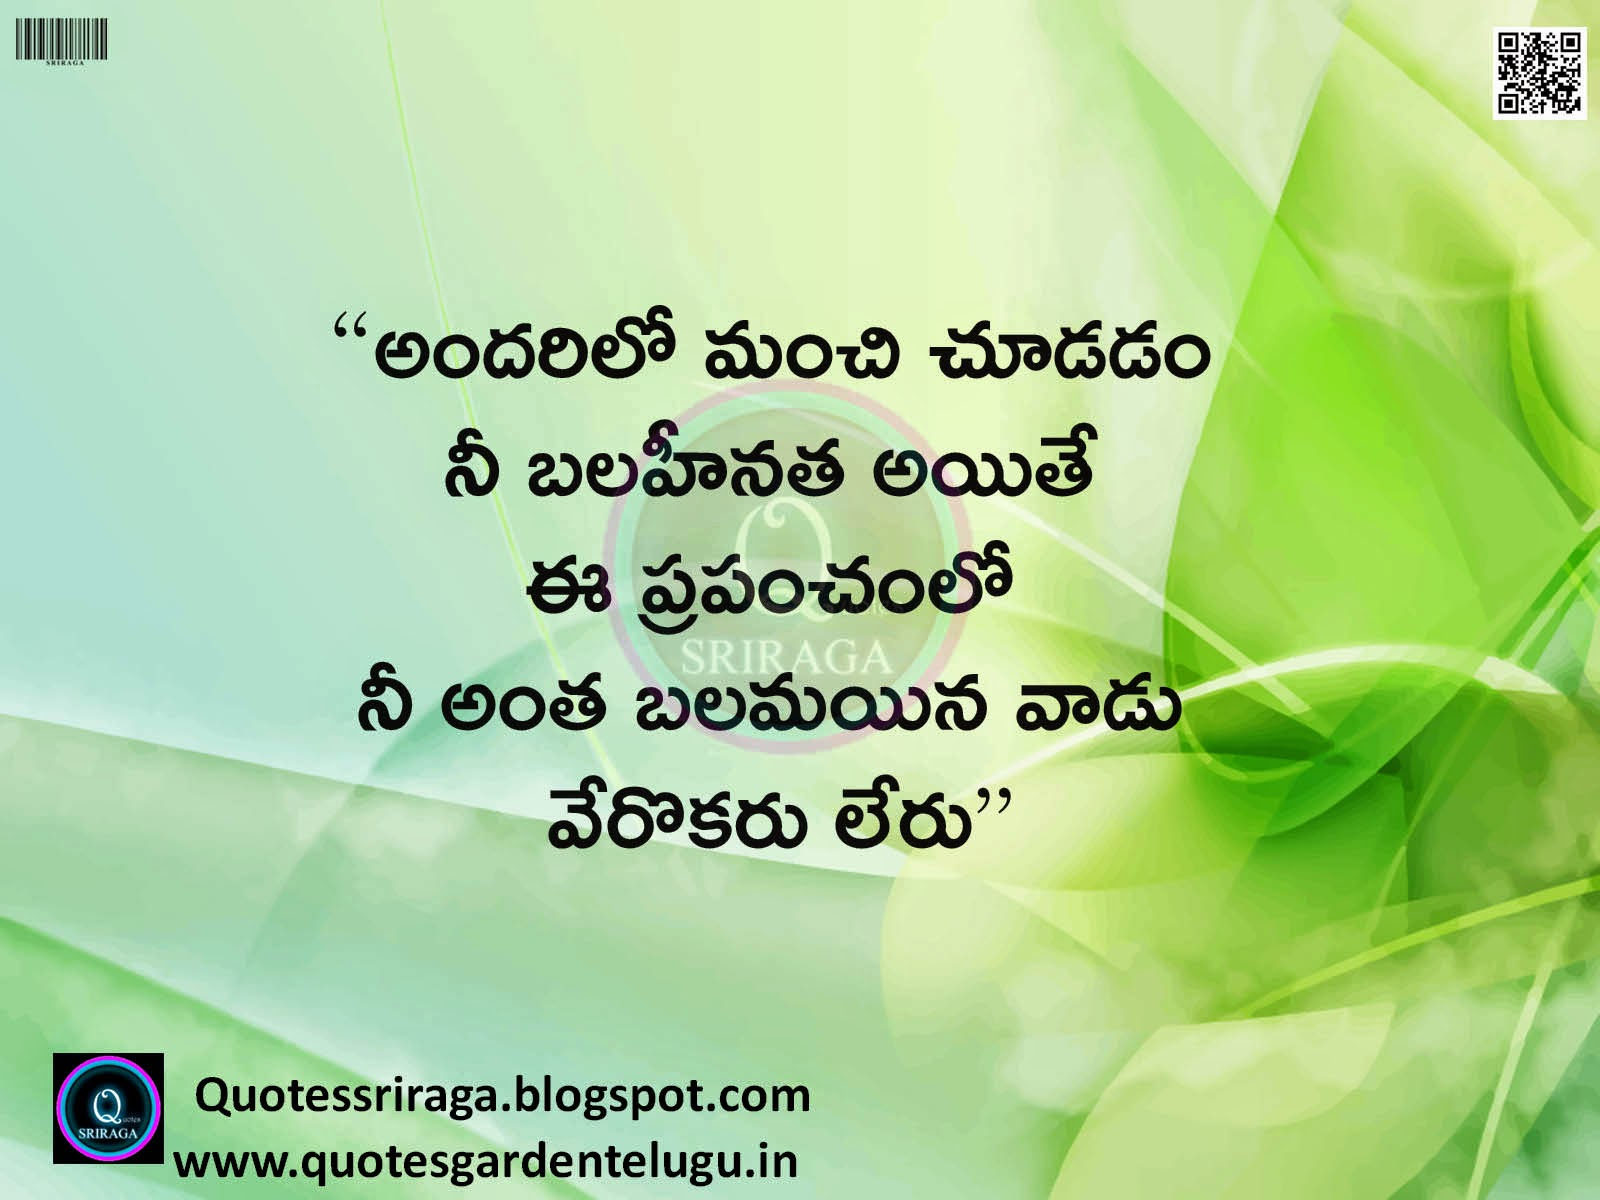 Best Telugu Quotes Good Reads Inspirational Quotes 454 images